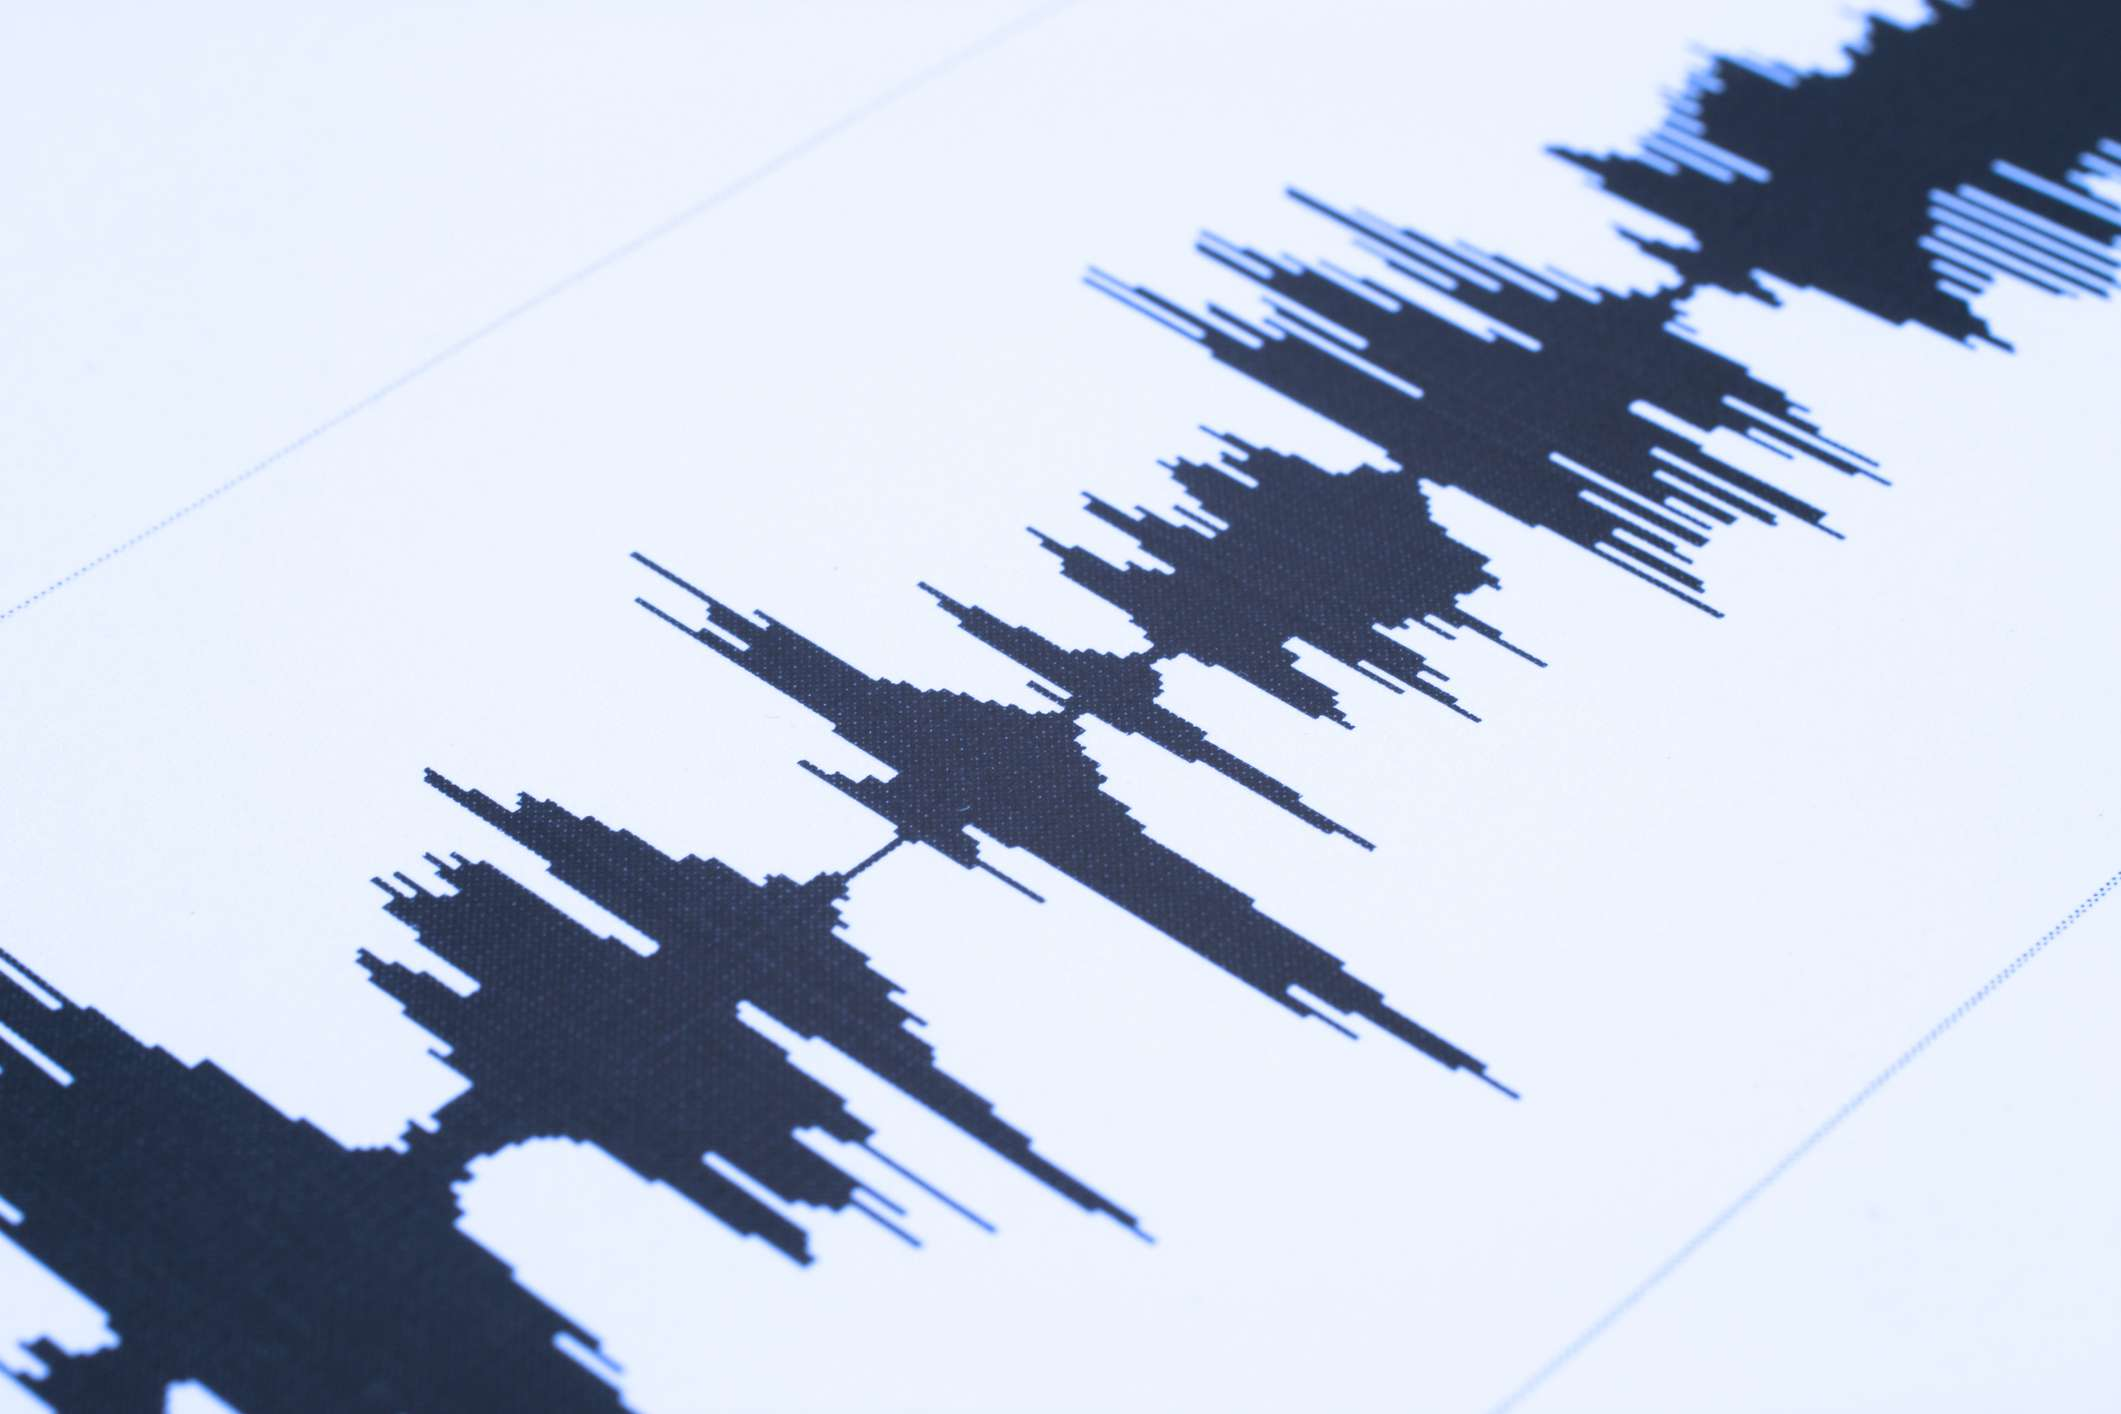 A photograph of a soundwave depicted on a screen in an audio production program